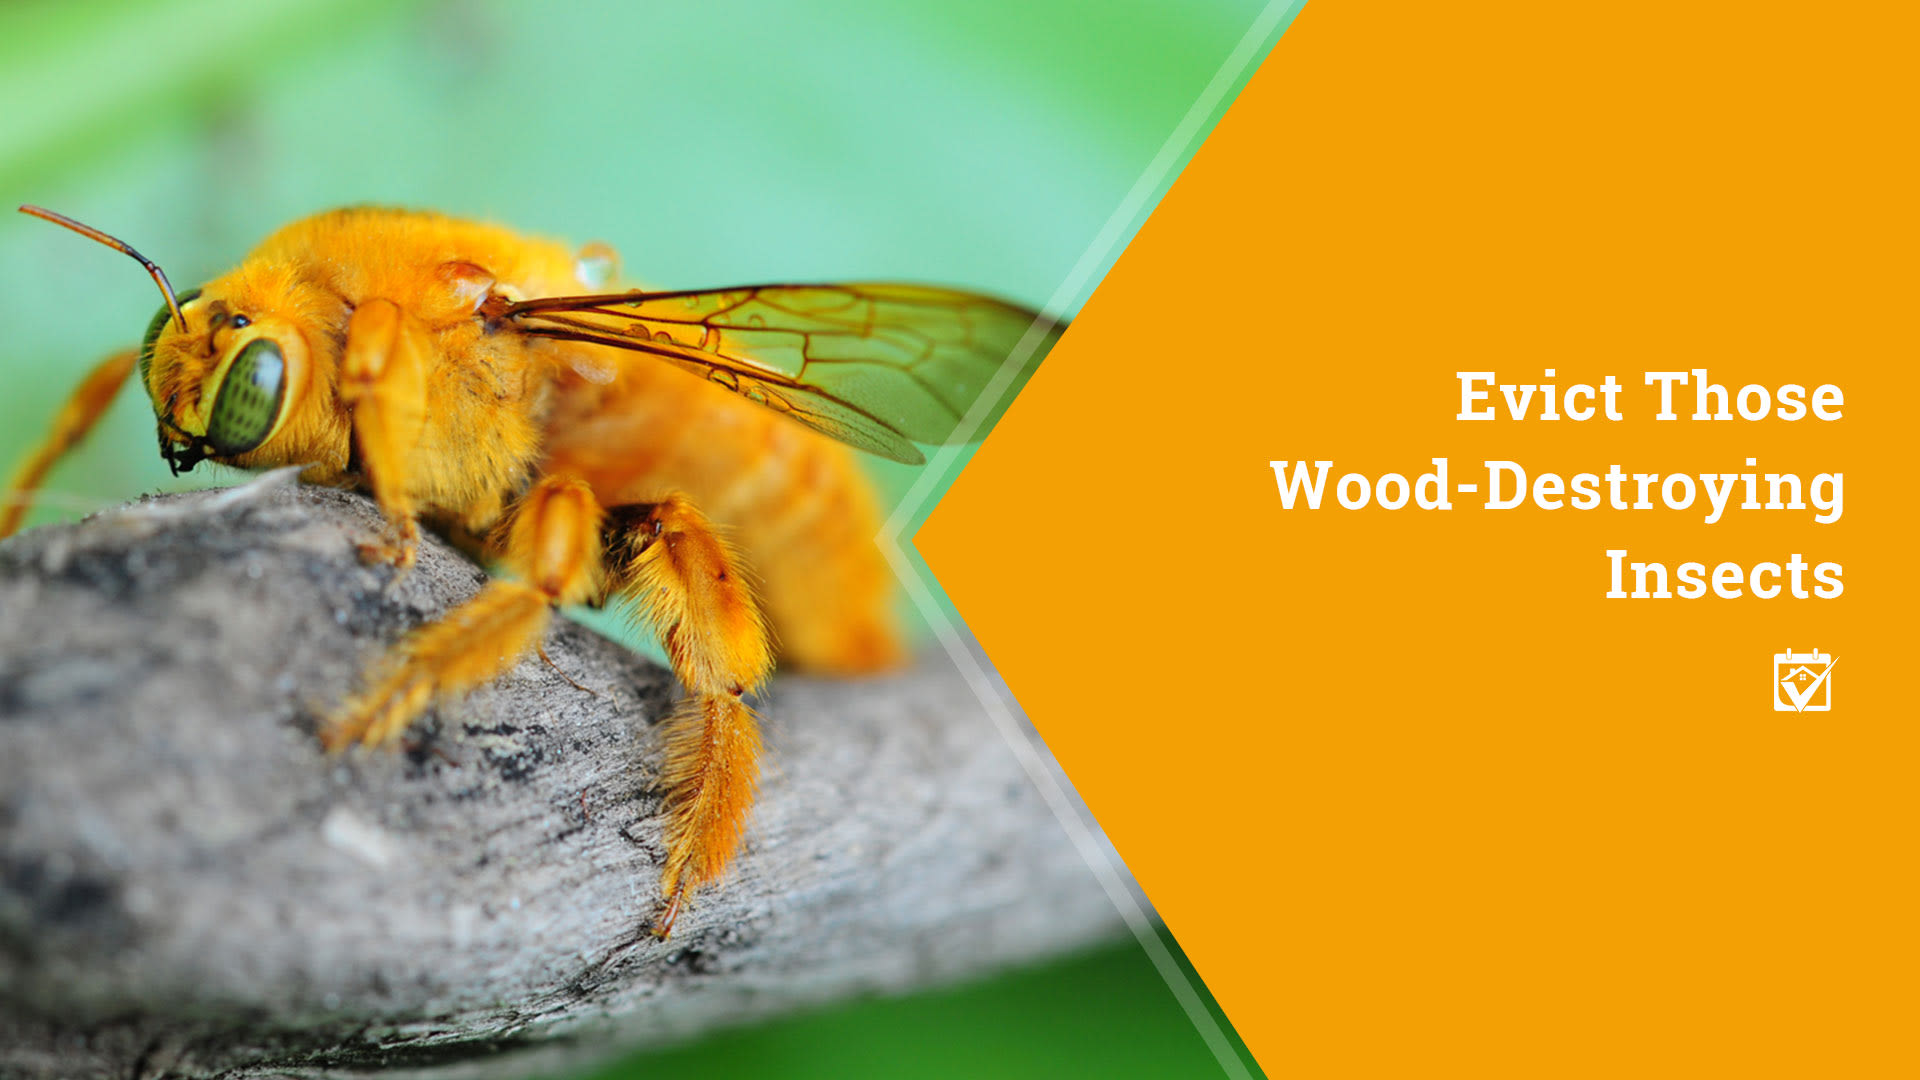 Evict Those Wood Destroying Insects